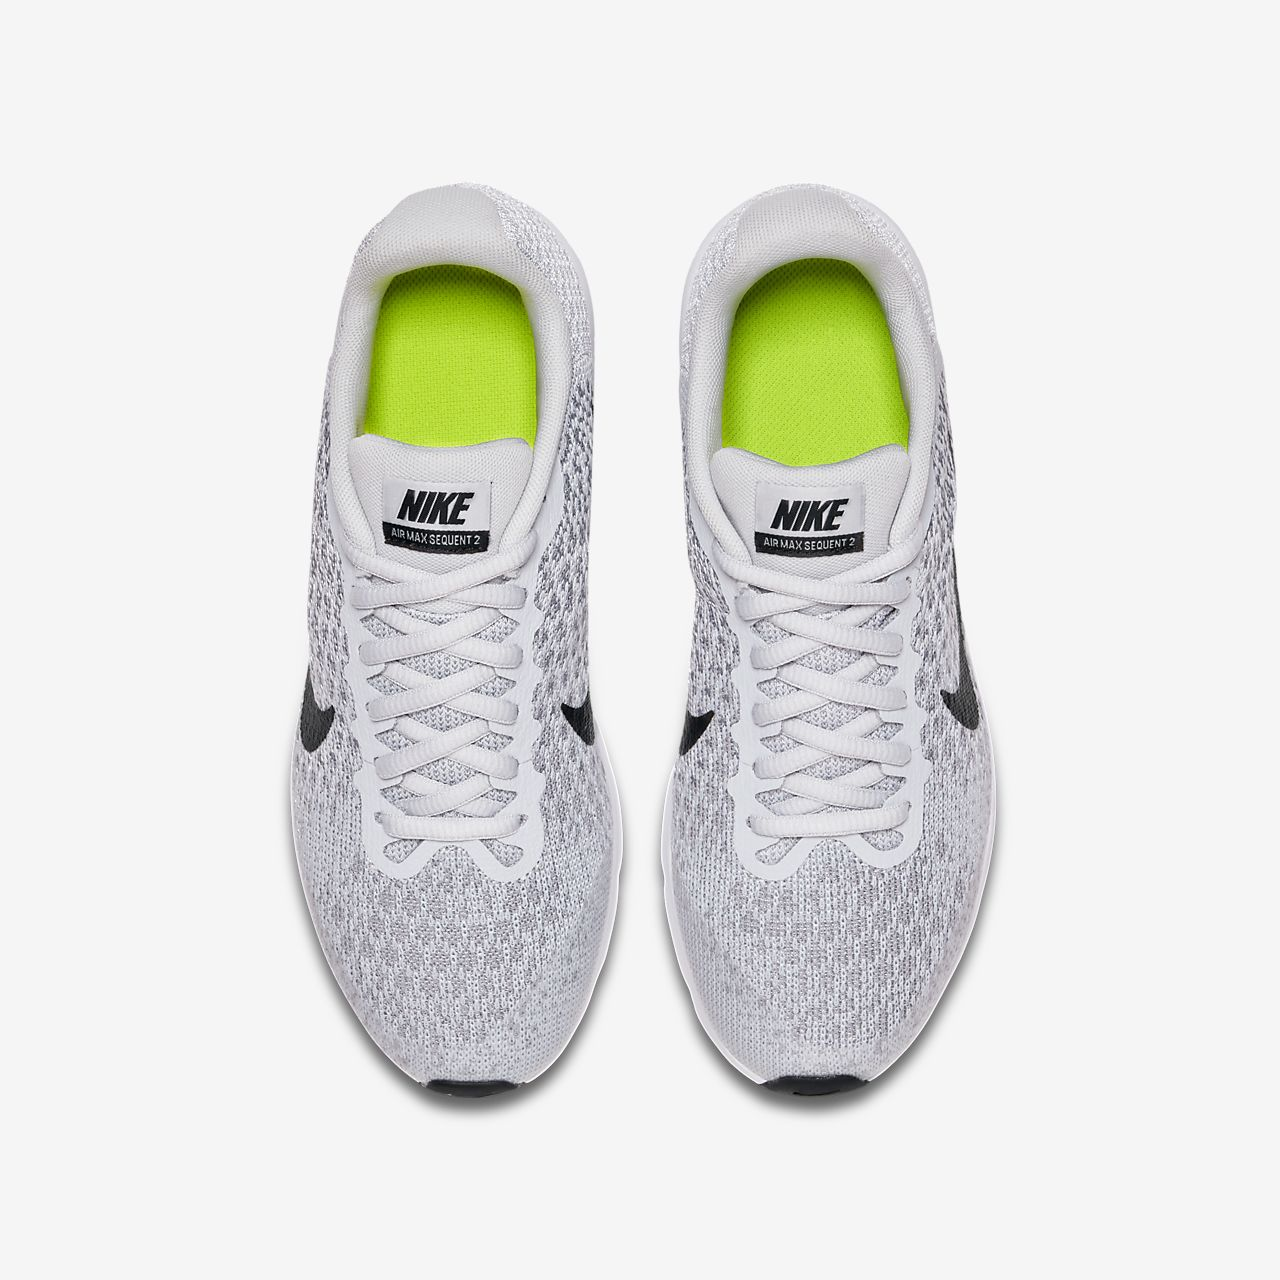 chaussure de running nike air max sequent 2,nike chaussures